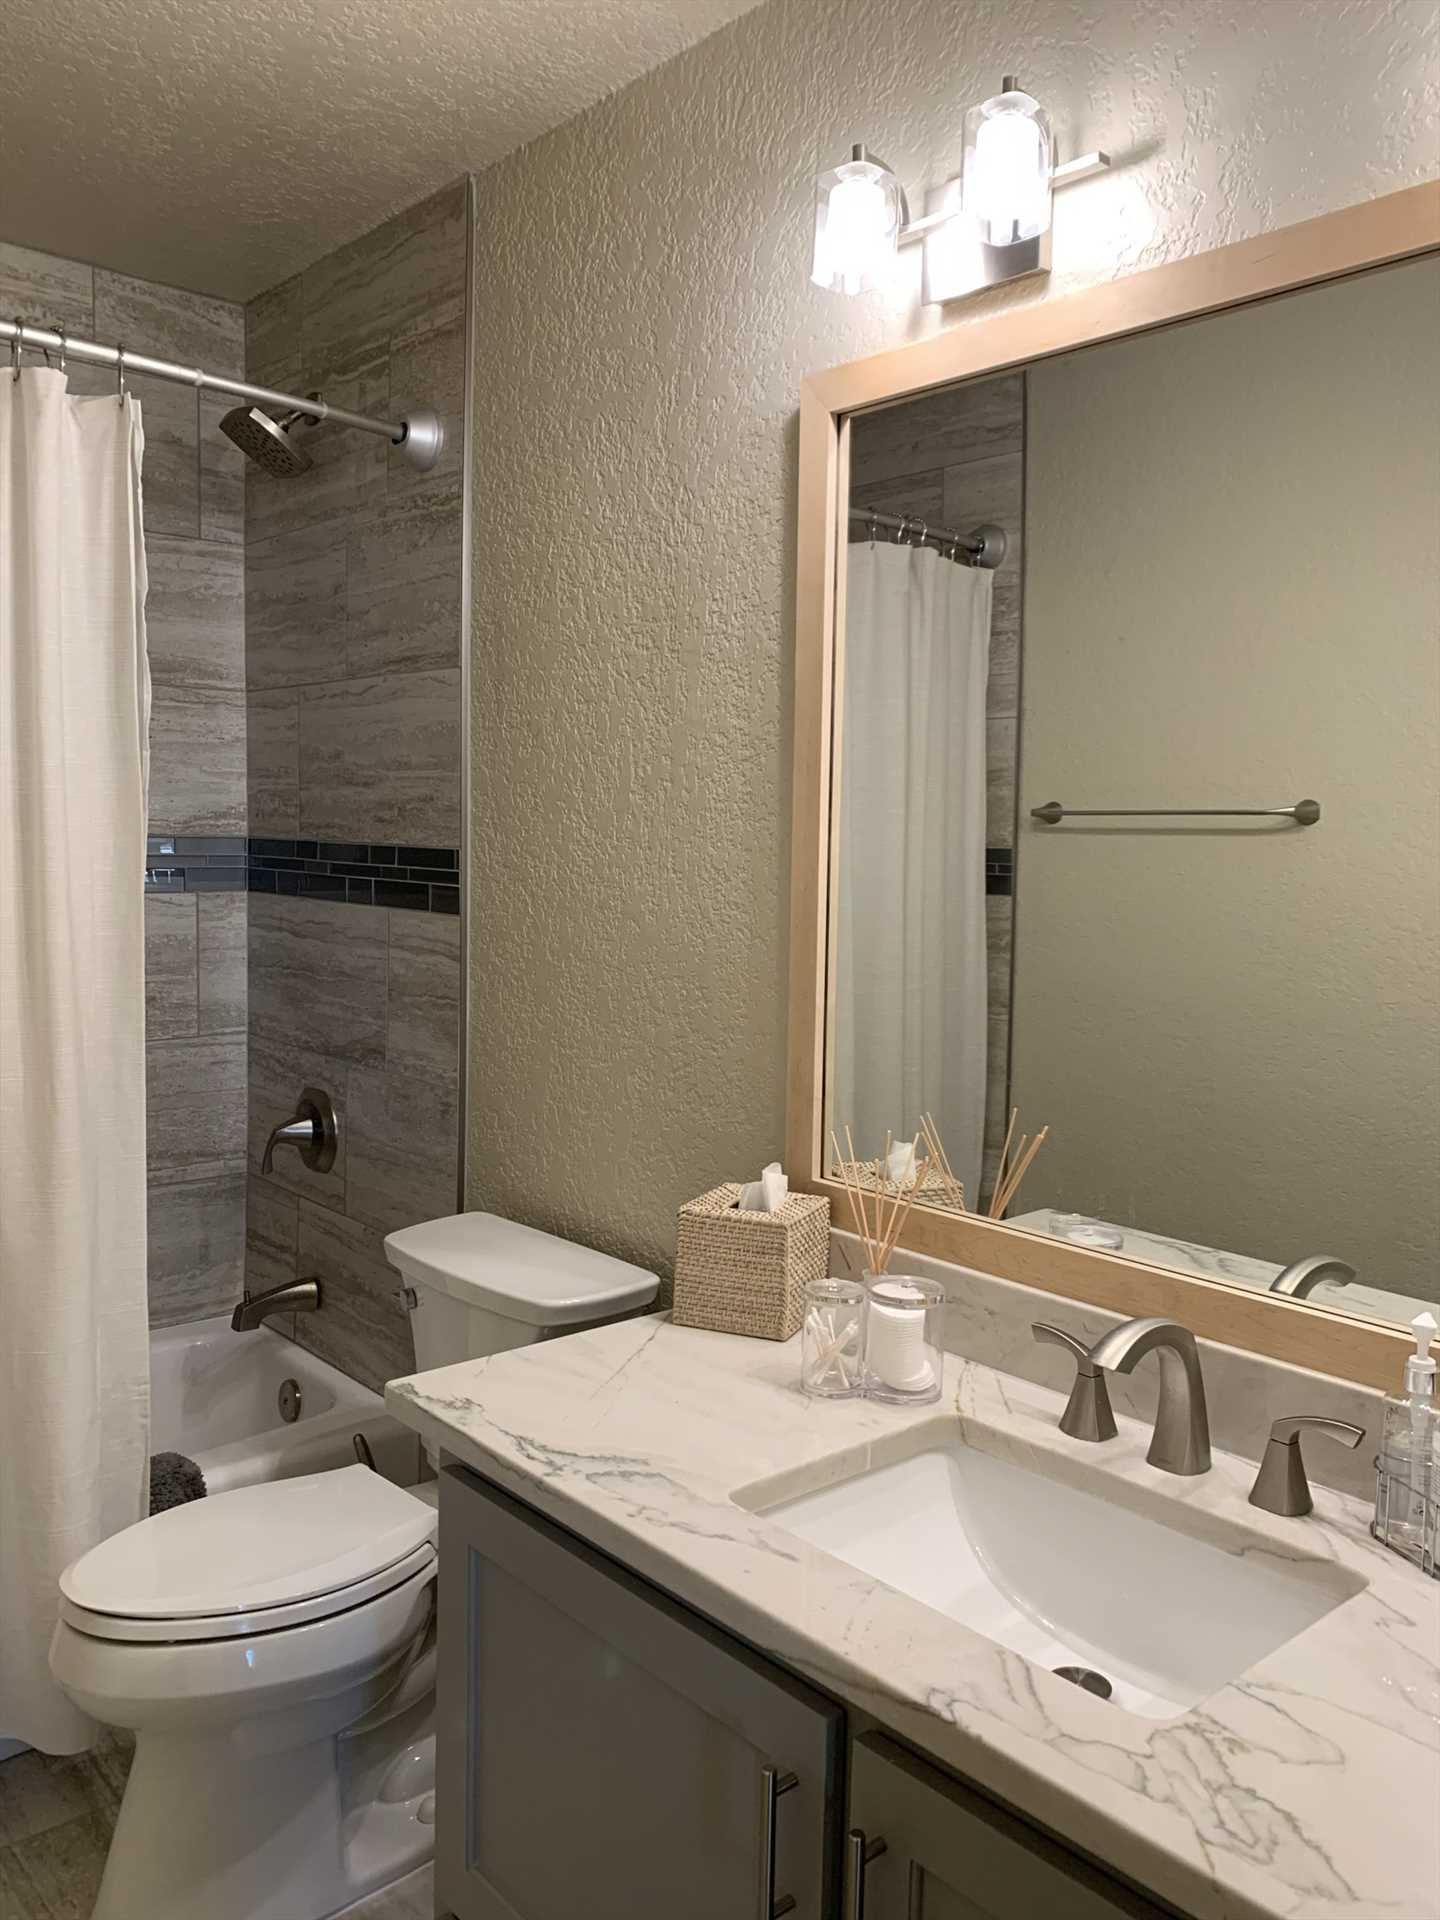 Clean linens can be found in all the bed and bathrooms, and the second bath is equipped with a handy tub and shower combo.